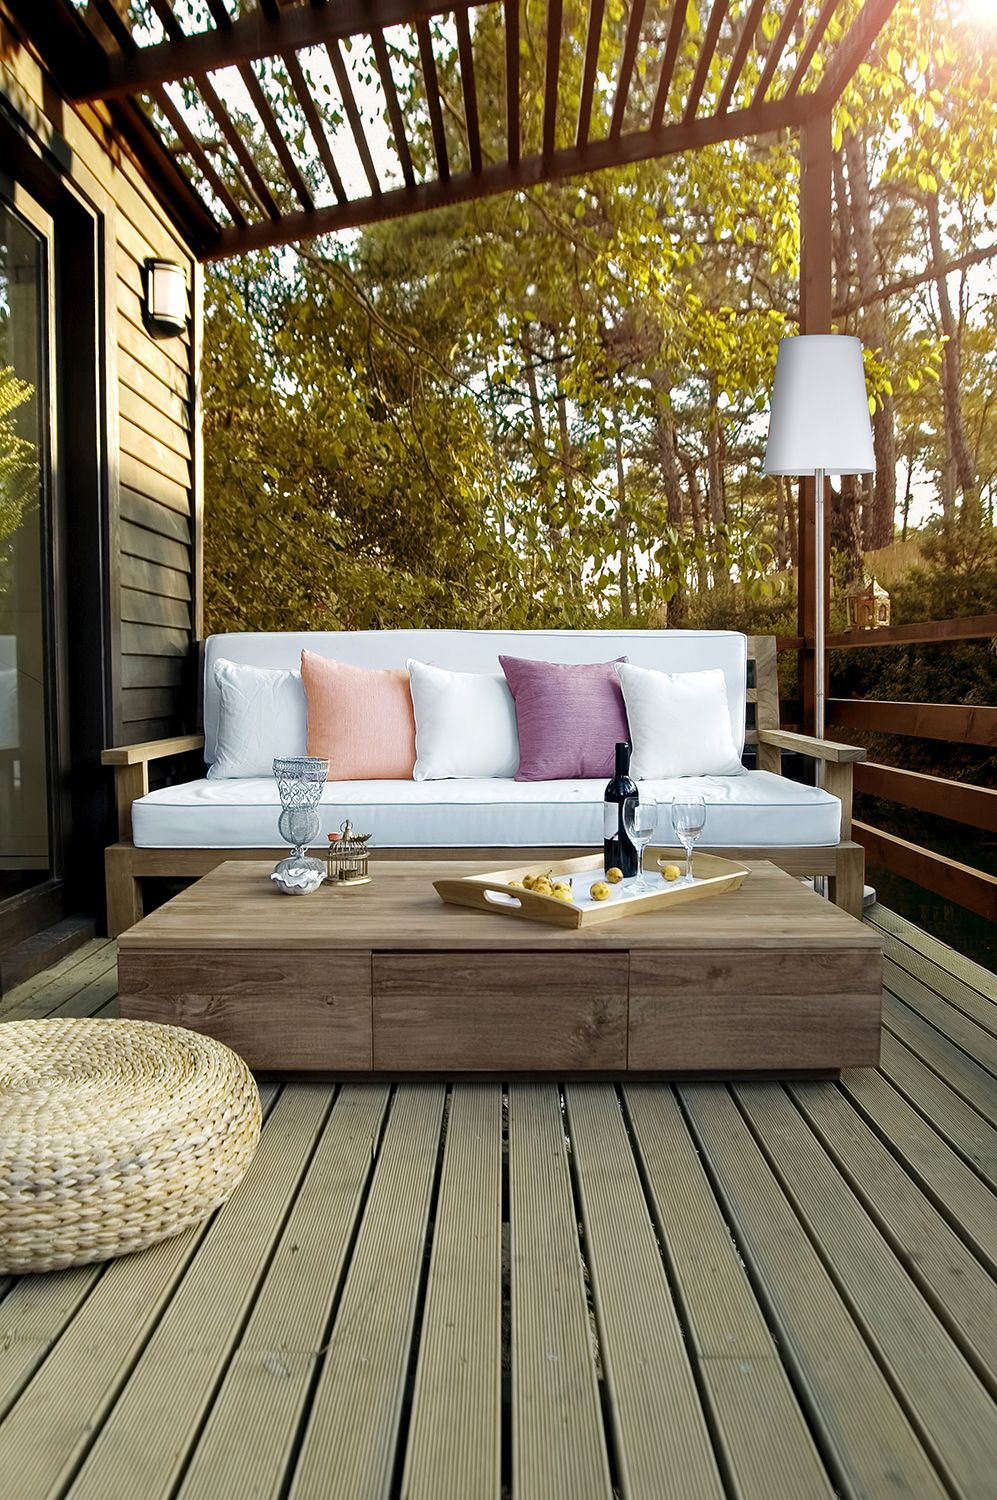 Time For Pergolas, Decks, Out Door Spaces To Enjoy! | Spring With Regard To Lamp Outdoor Porch Swings (View 10 of 25)